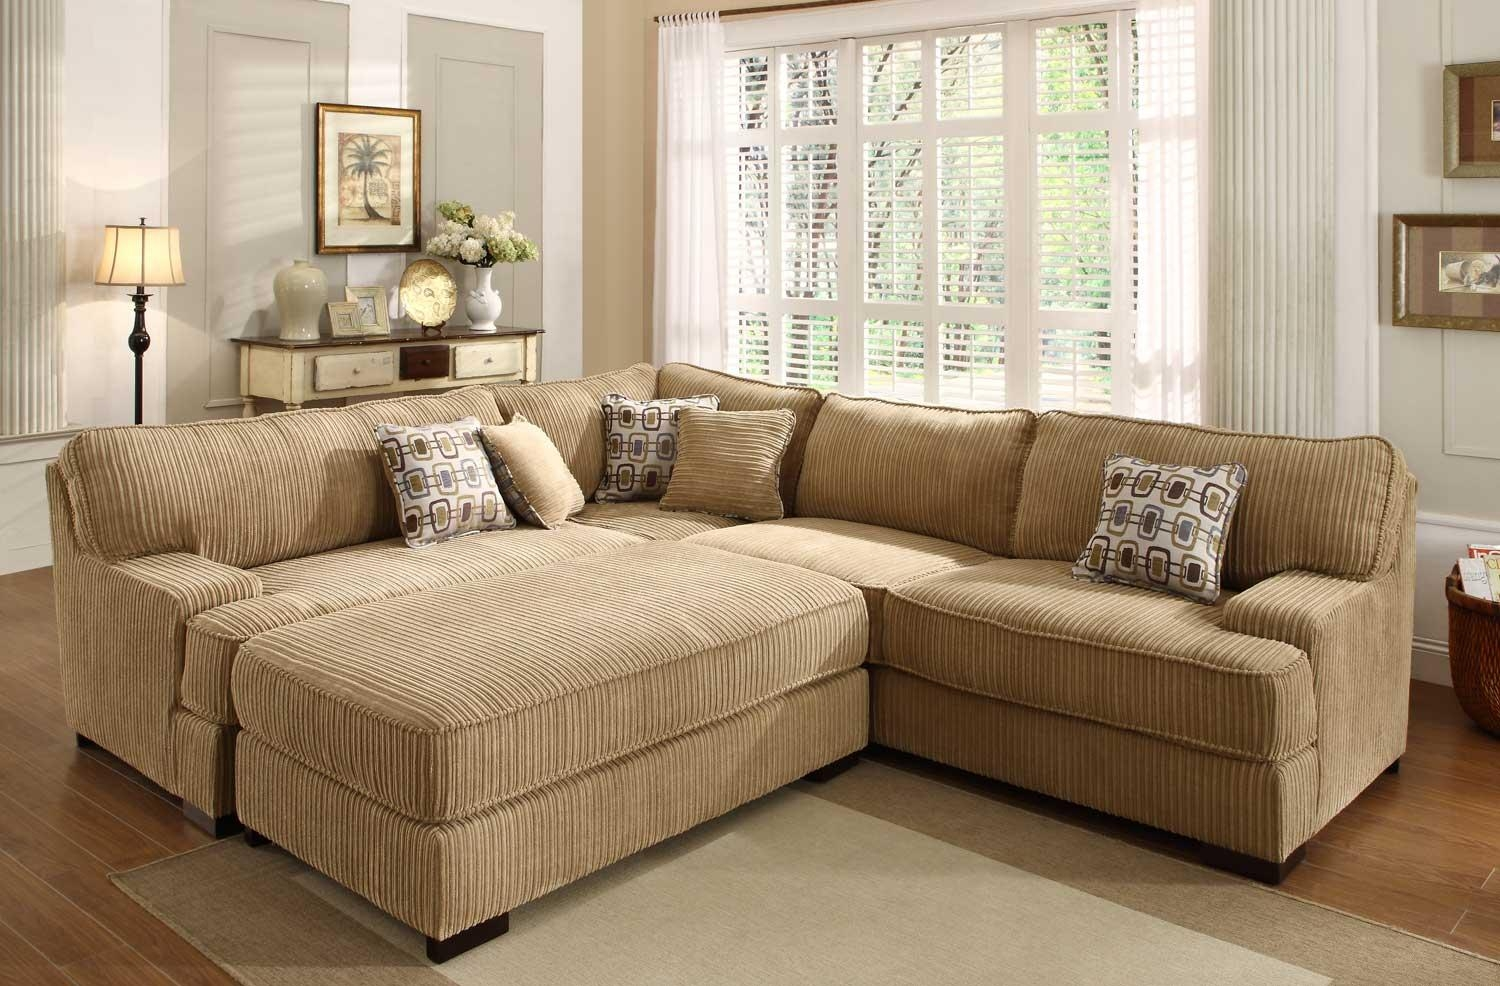 Sofas Center : Oversized Sectionals Sectional Sofas For Sale intended for Sectional With Oversized Ottoman